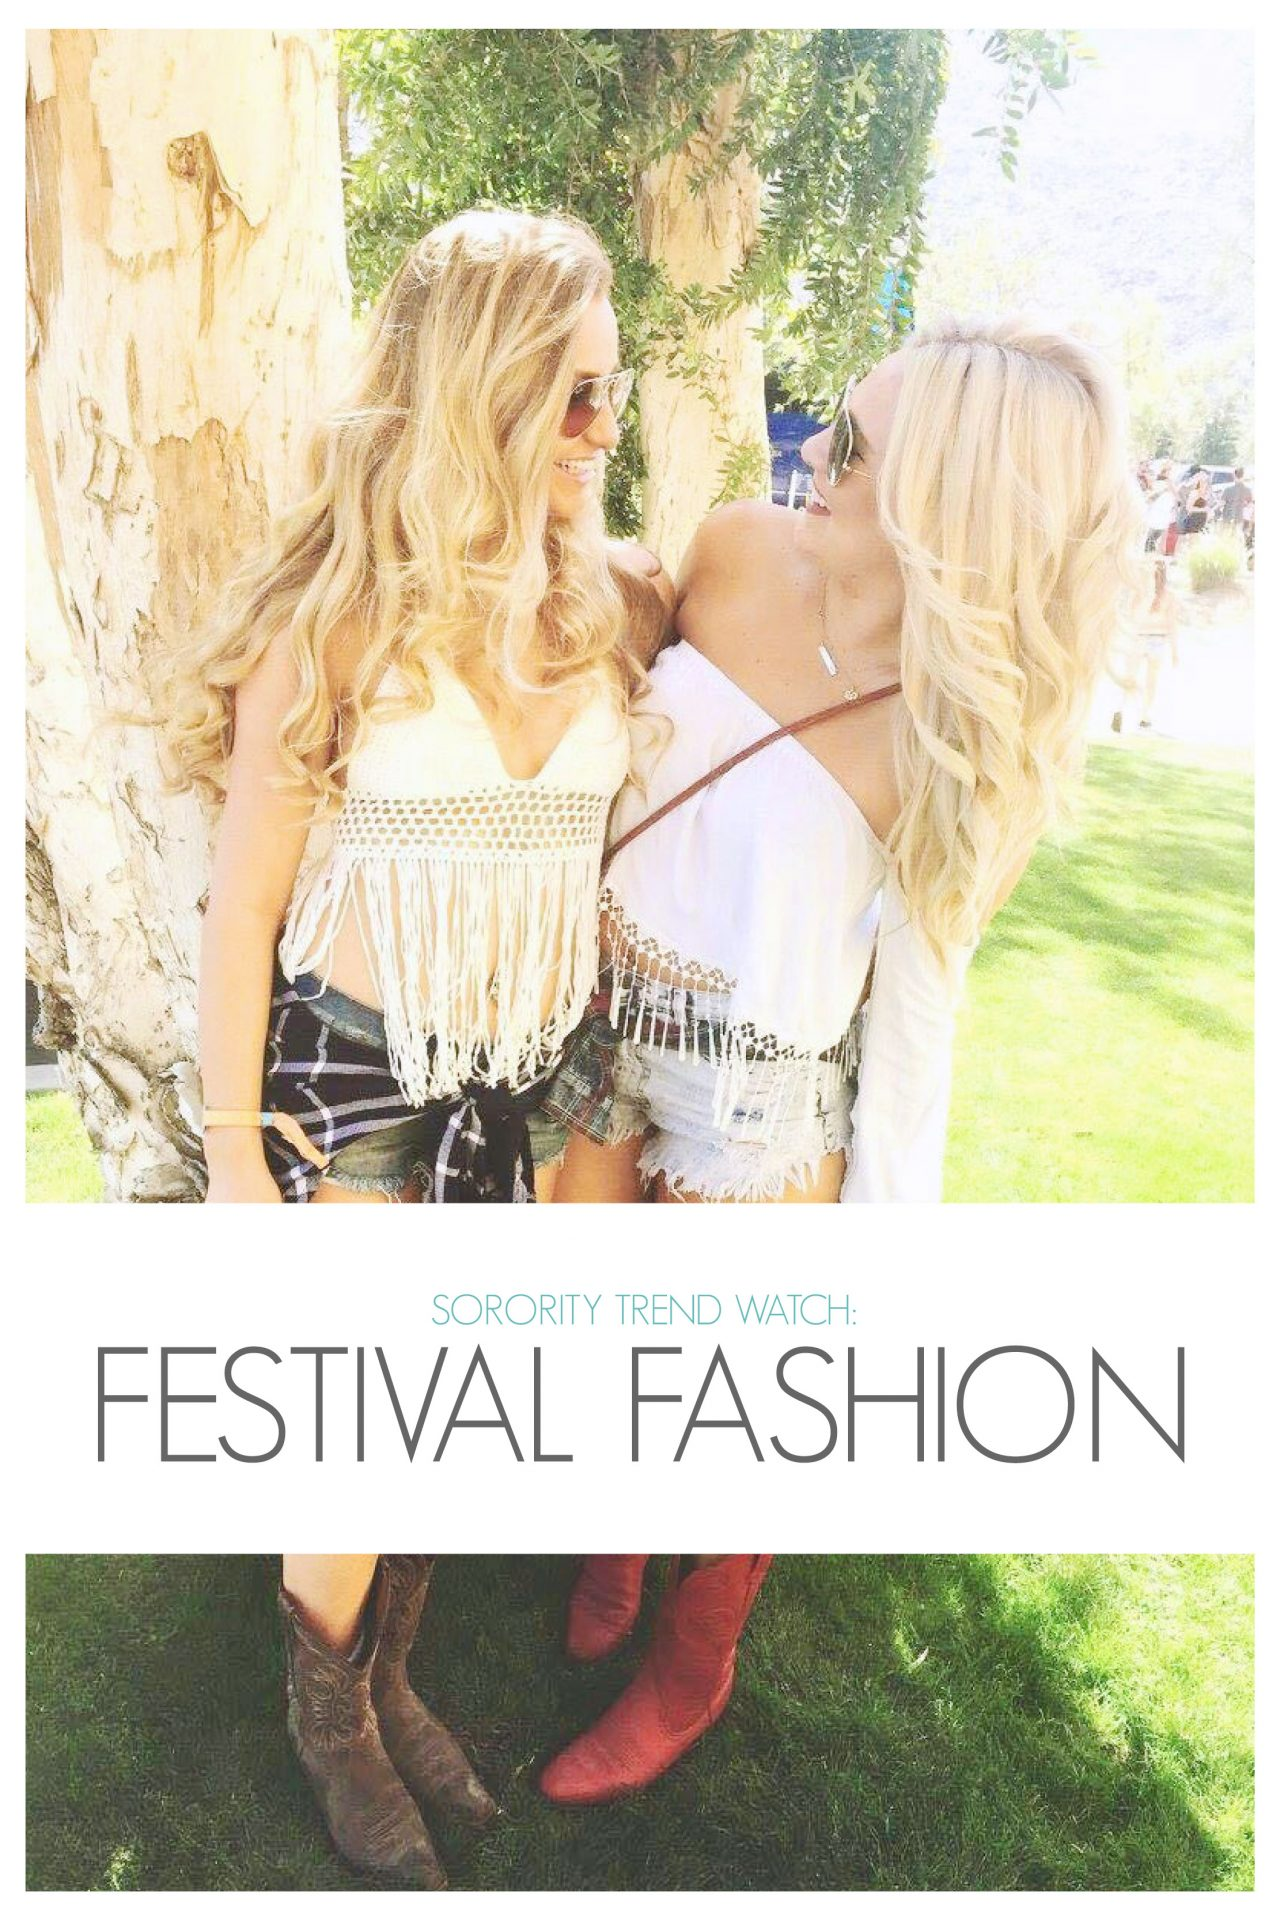 Top 8 Festival Fashion Trends of 2017